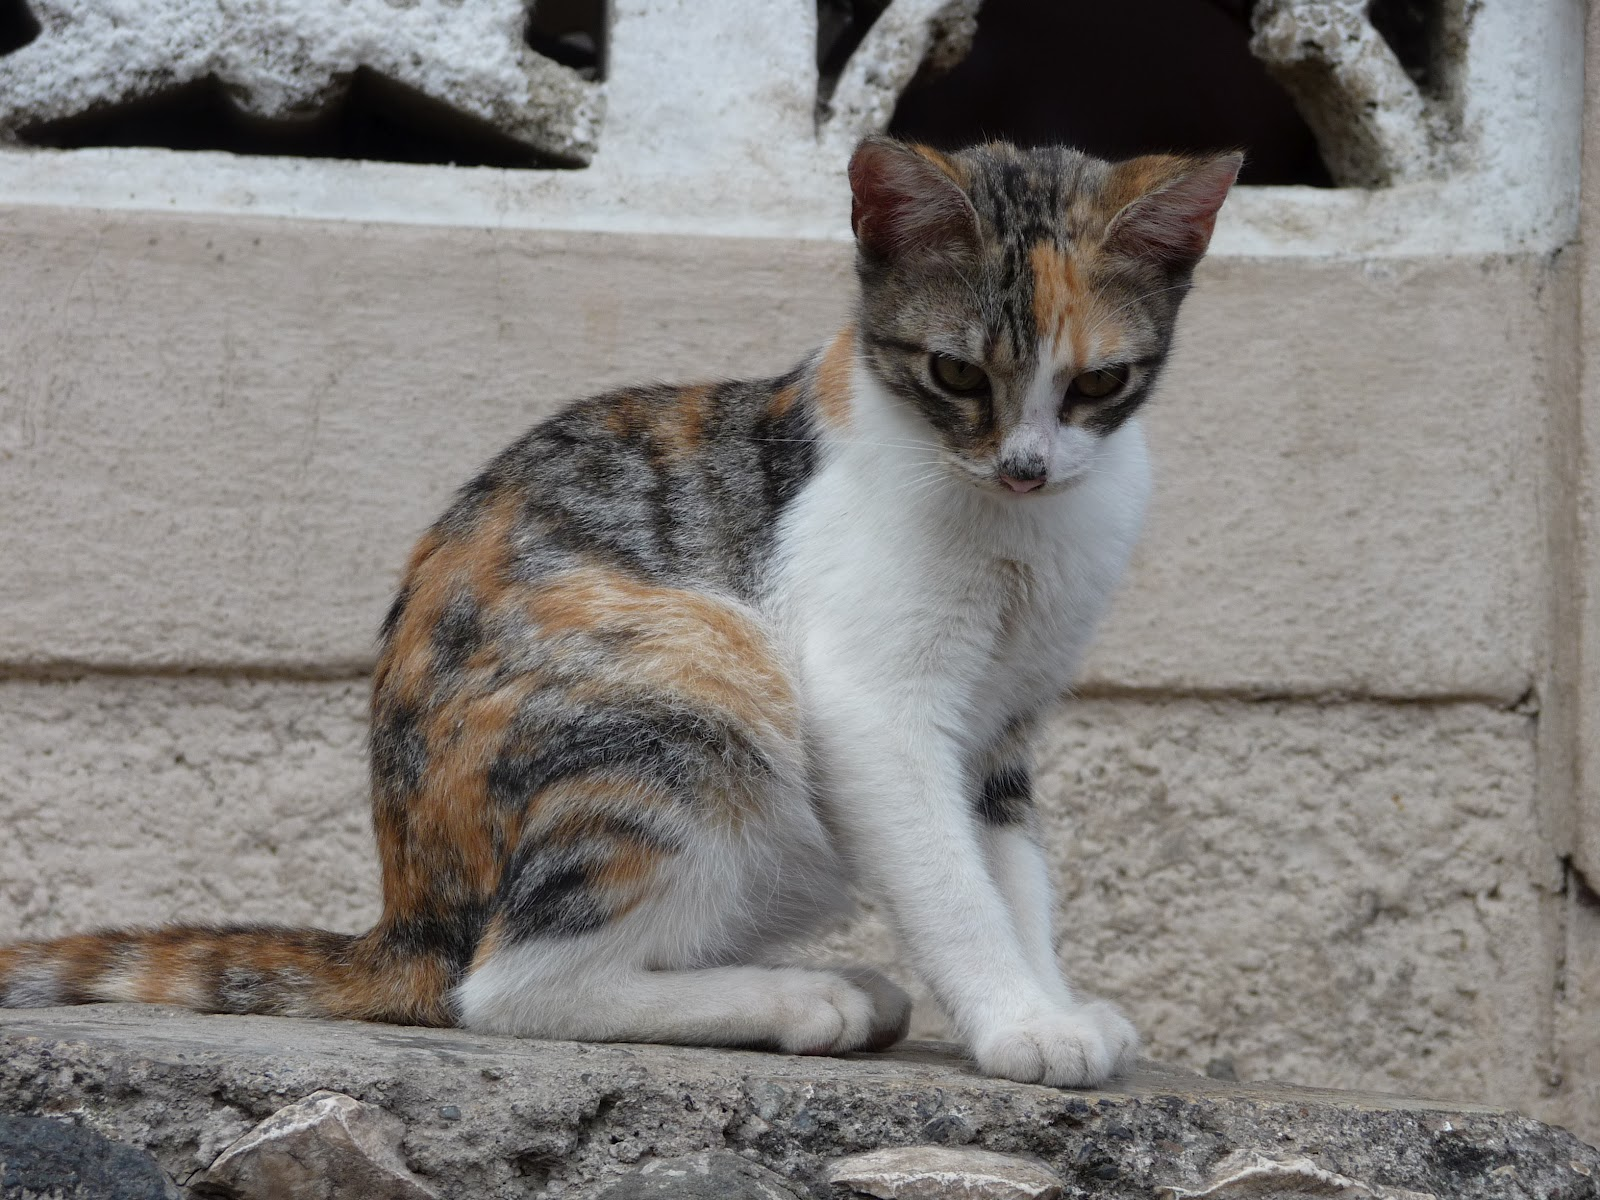 haiti s happy cats and the need for veterinary care in developing countries